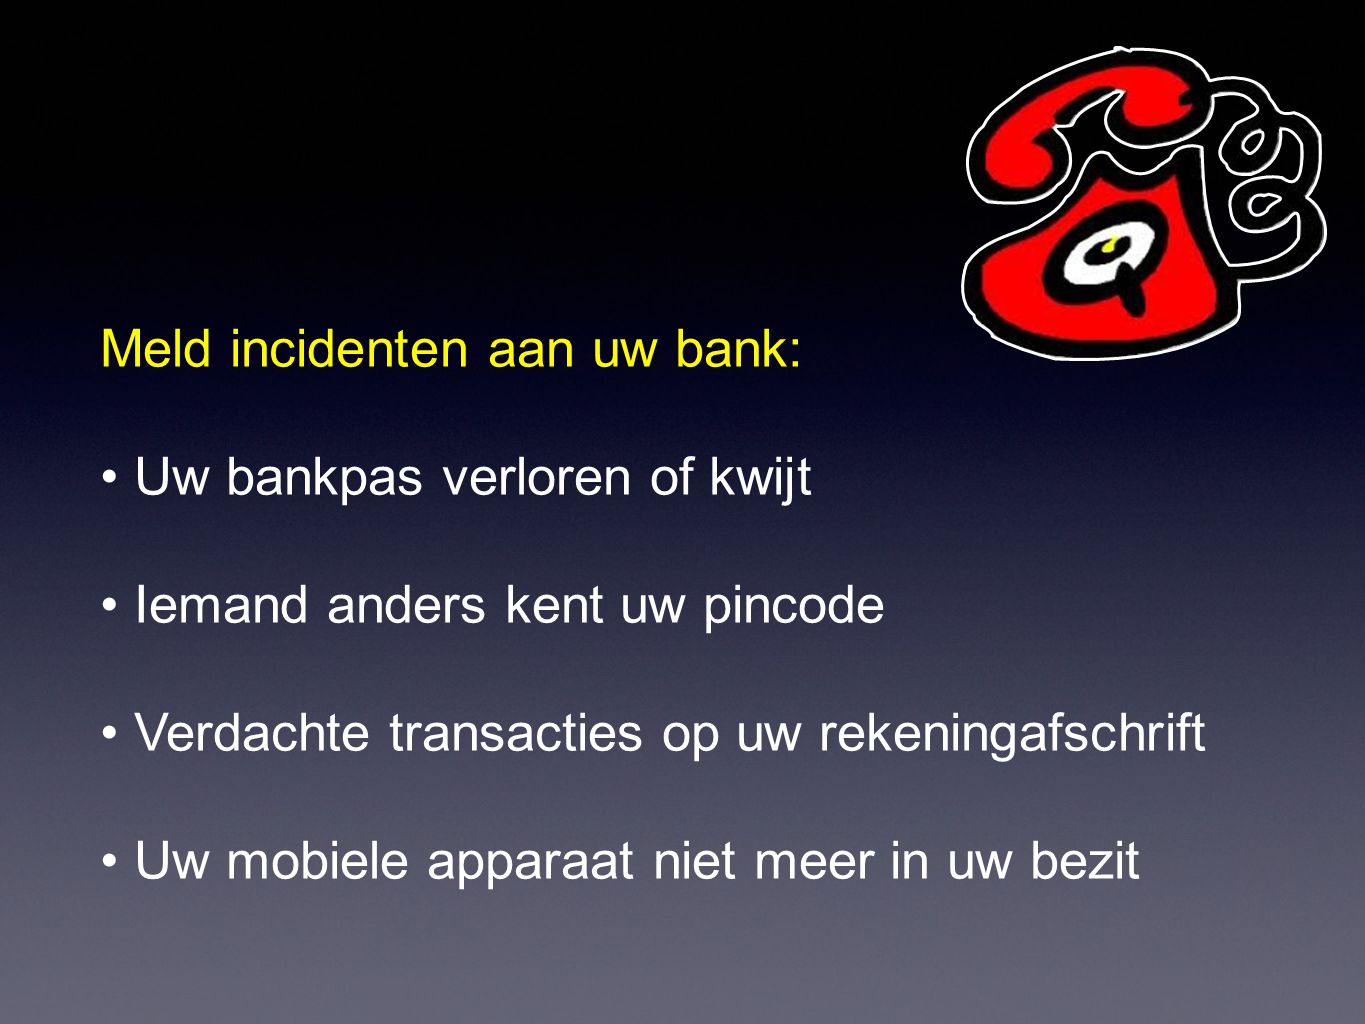 Meld incidenten aan uw bank: